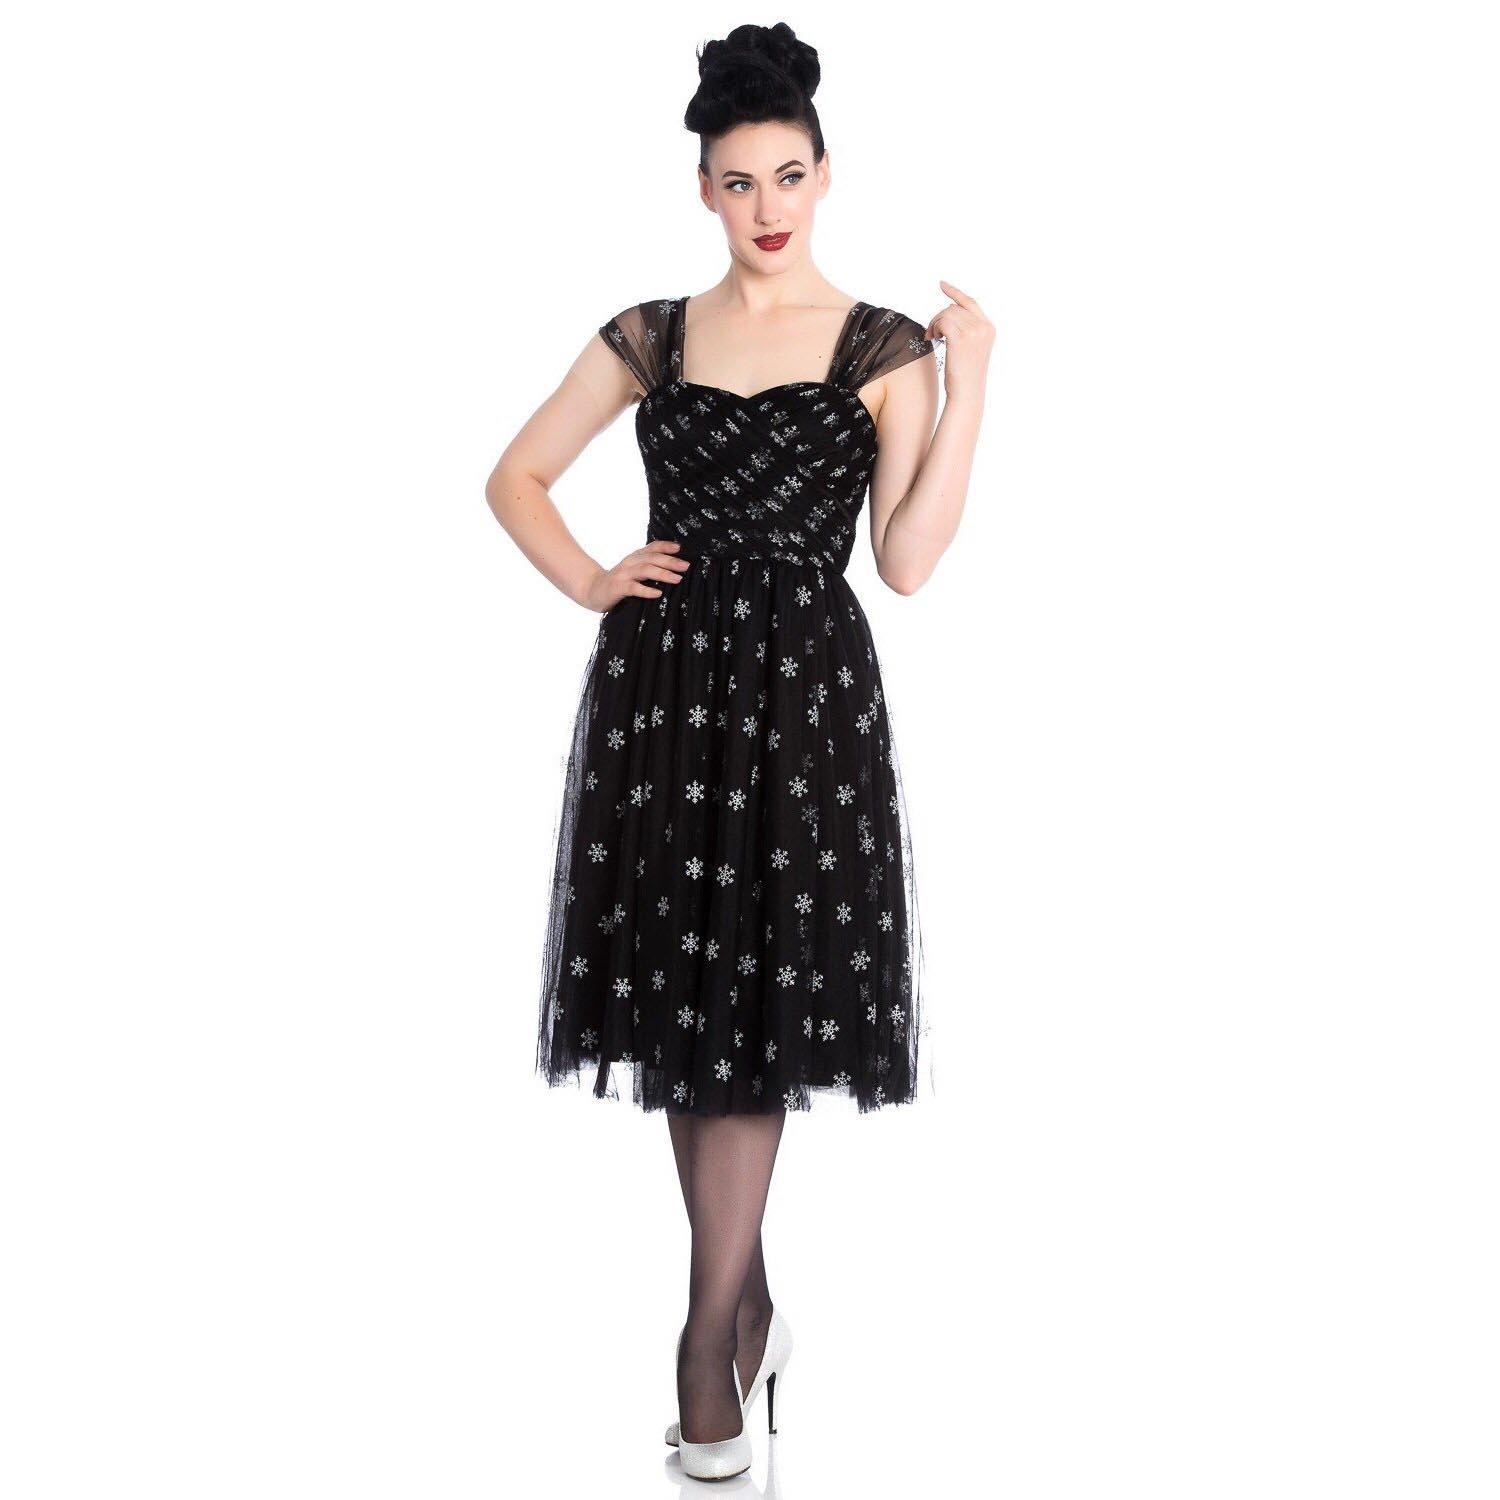 Hell-Bunny-50s-Black-Christmas-Dress-SNOWSTAR-Glitter-Snowflakes-All-Sizes thumbnail 3